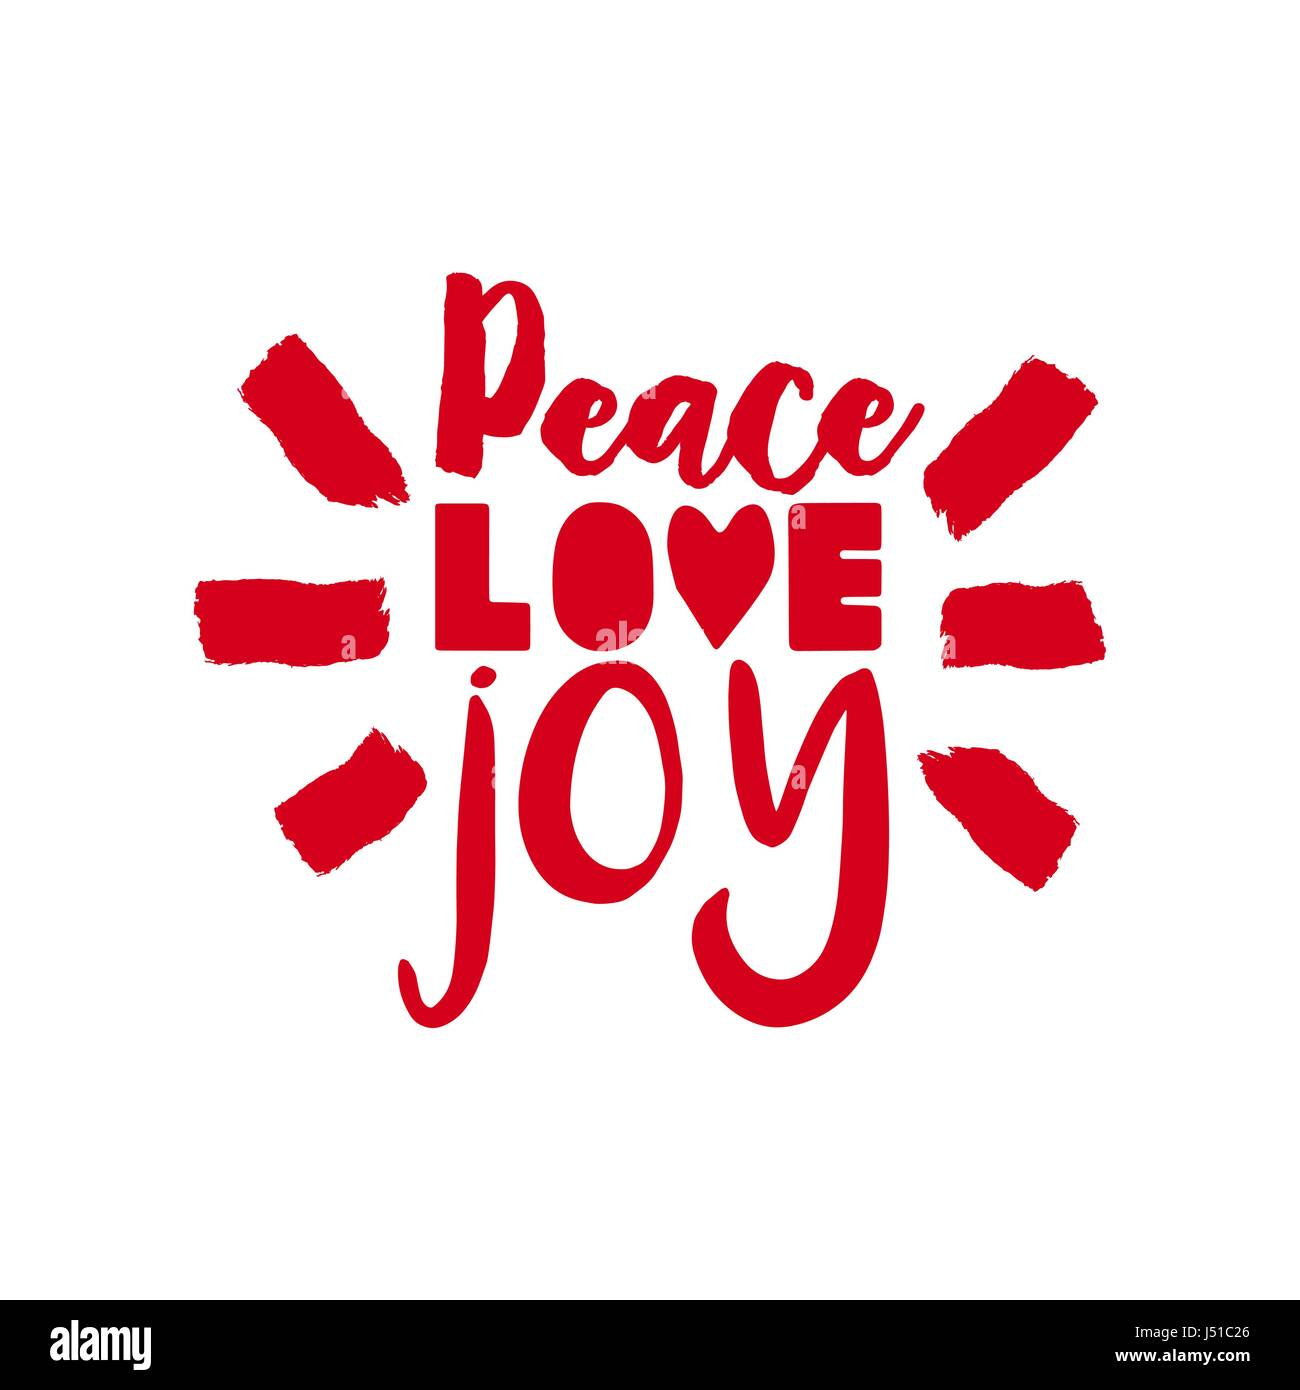 Merry christmas calligraphic quote design peace love joy lettering merry christmas calligraphic quote design peace love joy lettering illustration for holiday season greeting card eps10 vector m4hsunfo